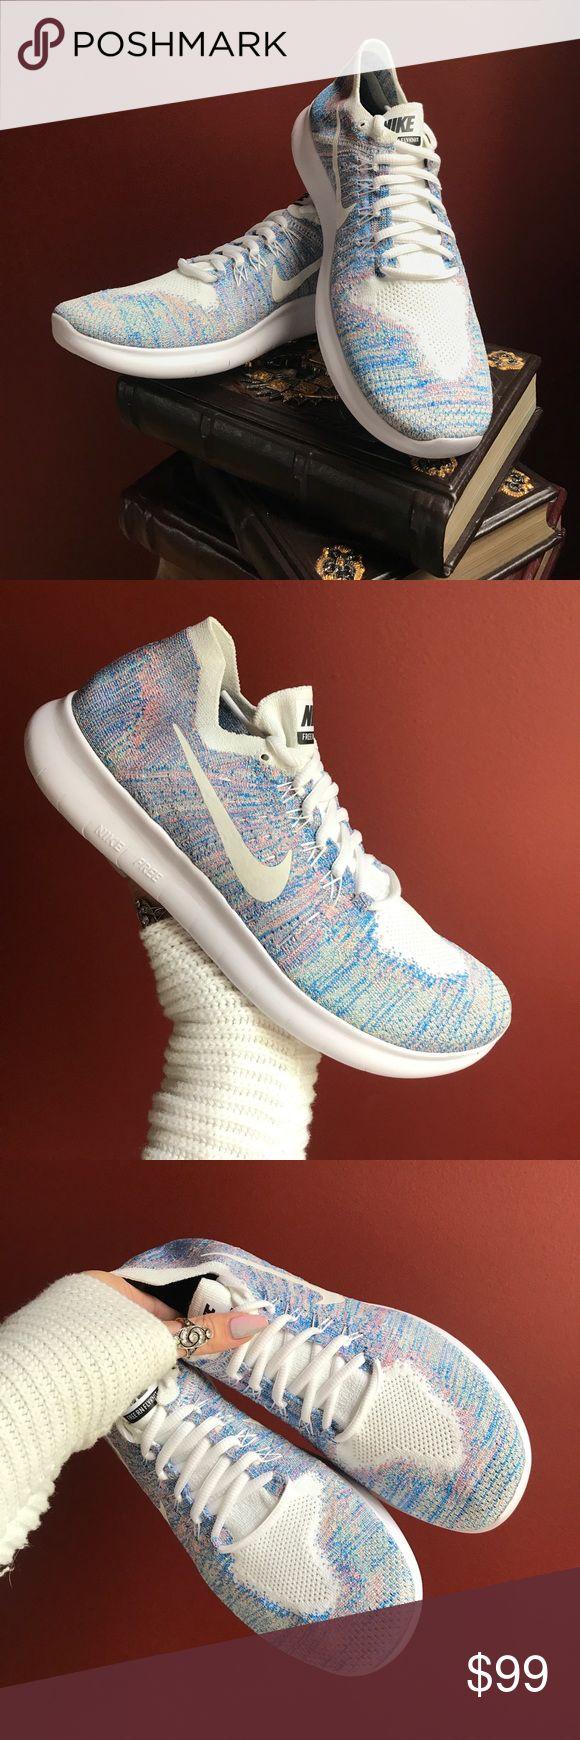 NWT Nike ID Free RN custom Brand new no box,price is firm!!custom made. The next generation of the coveted Nike Free is here. Now with a newly designed Auxetic tri-star outsole pattern and sock-like Flyknit upper, the Men's Nike Free RN Flyknit Running Sh